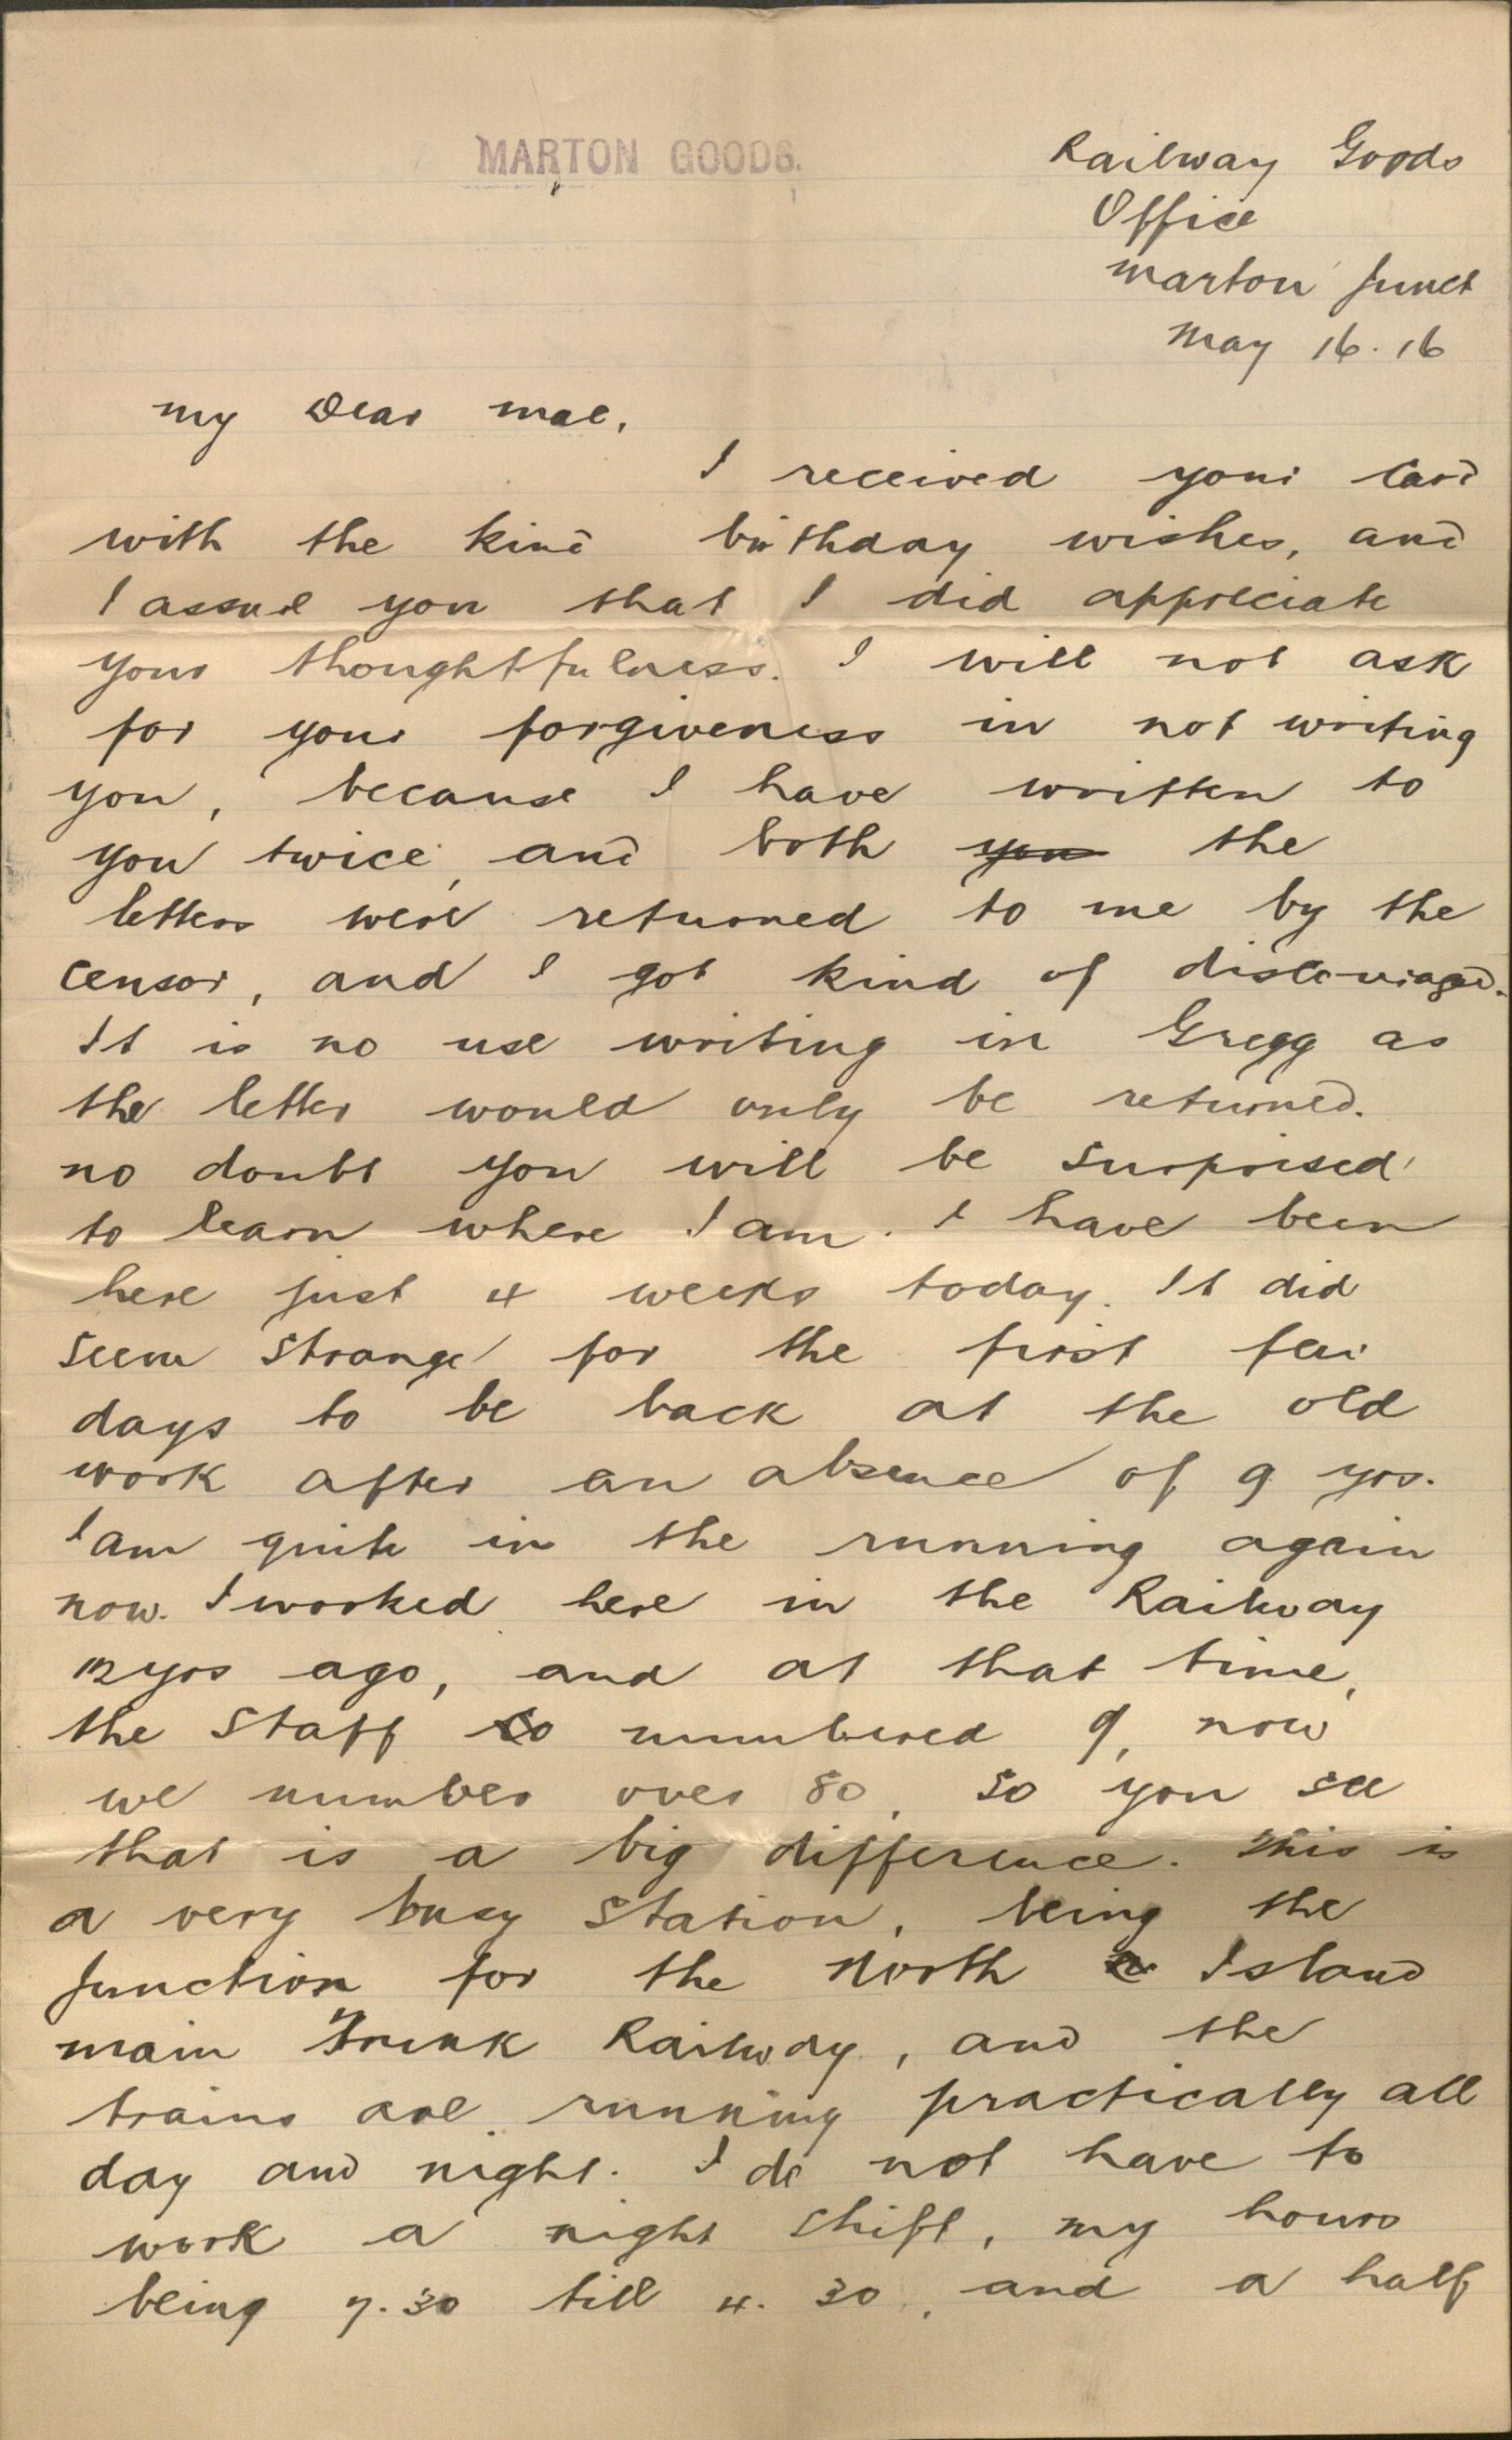 Image of first page of letter from Henderson to Gillette, May 16, 1915